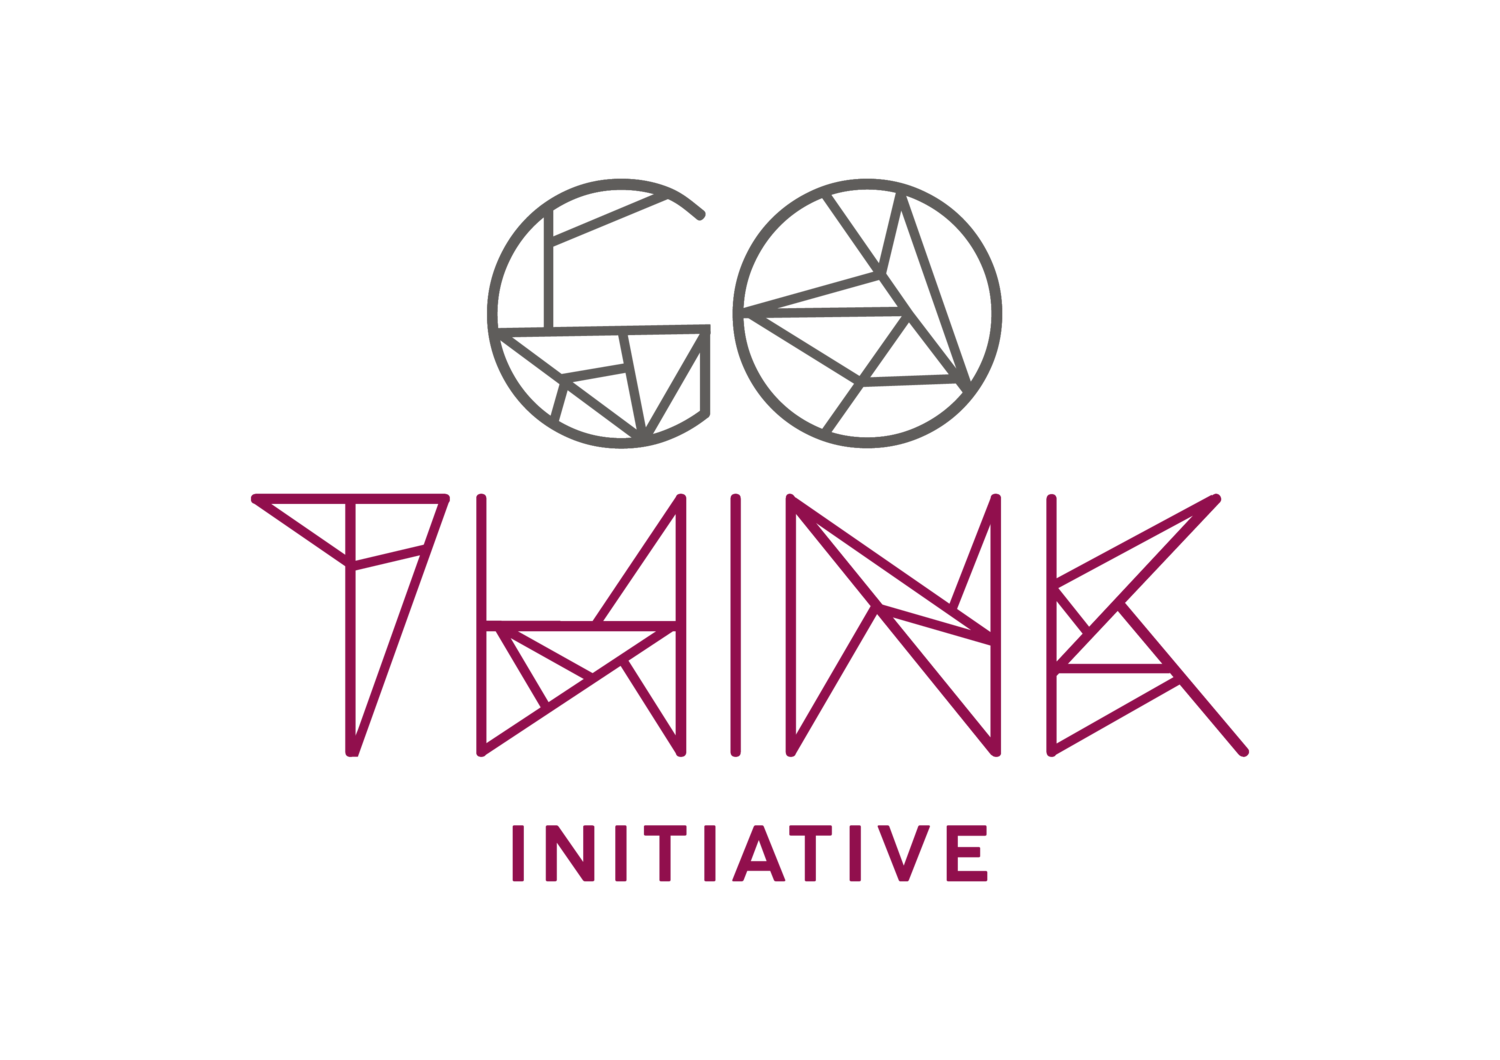 Go Think Initiative